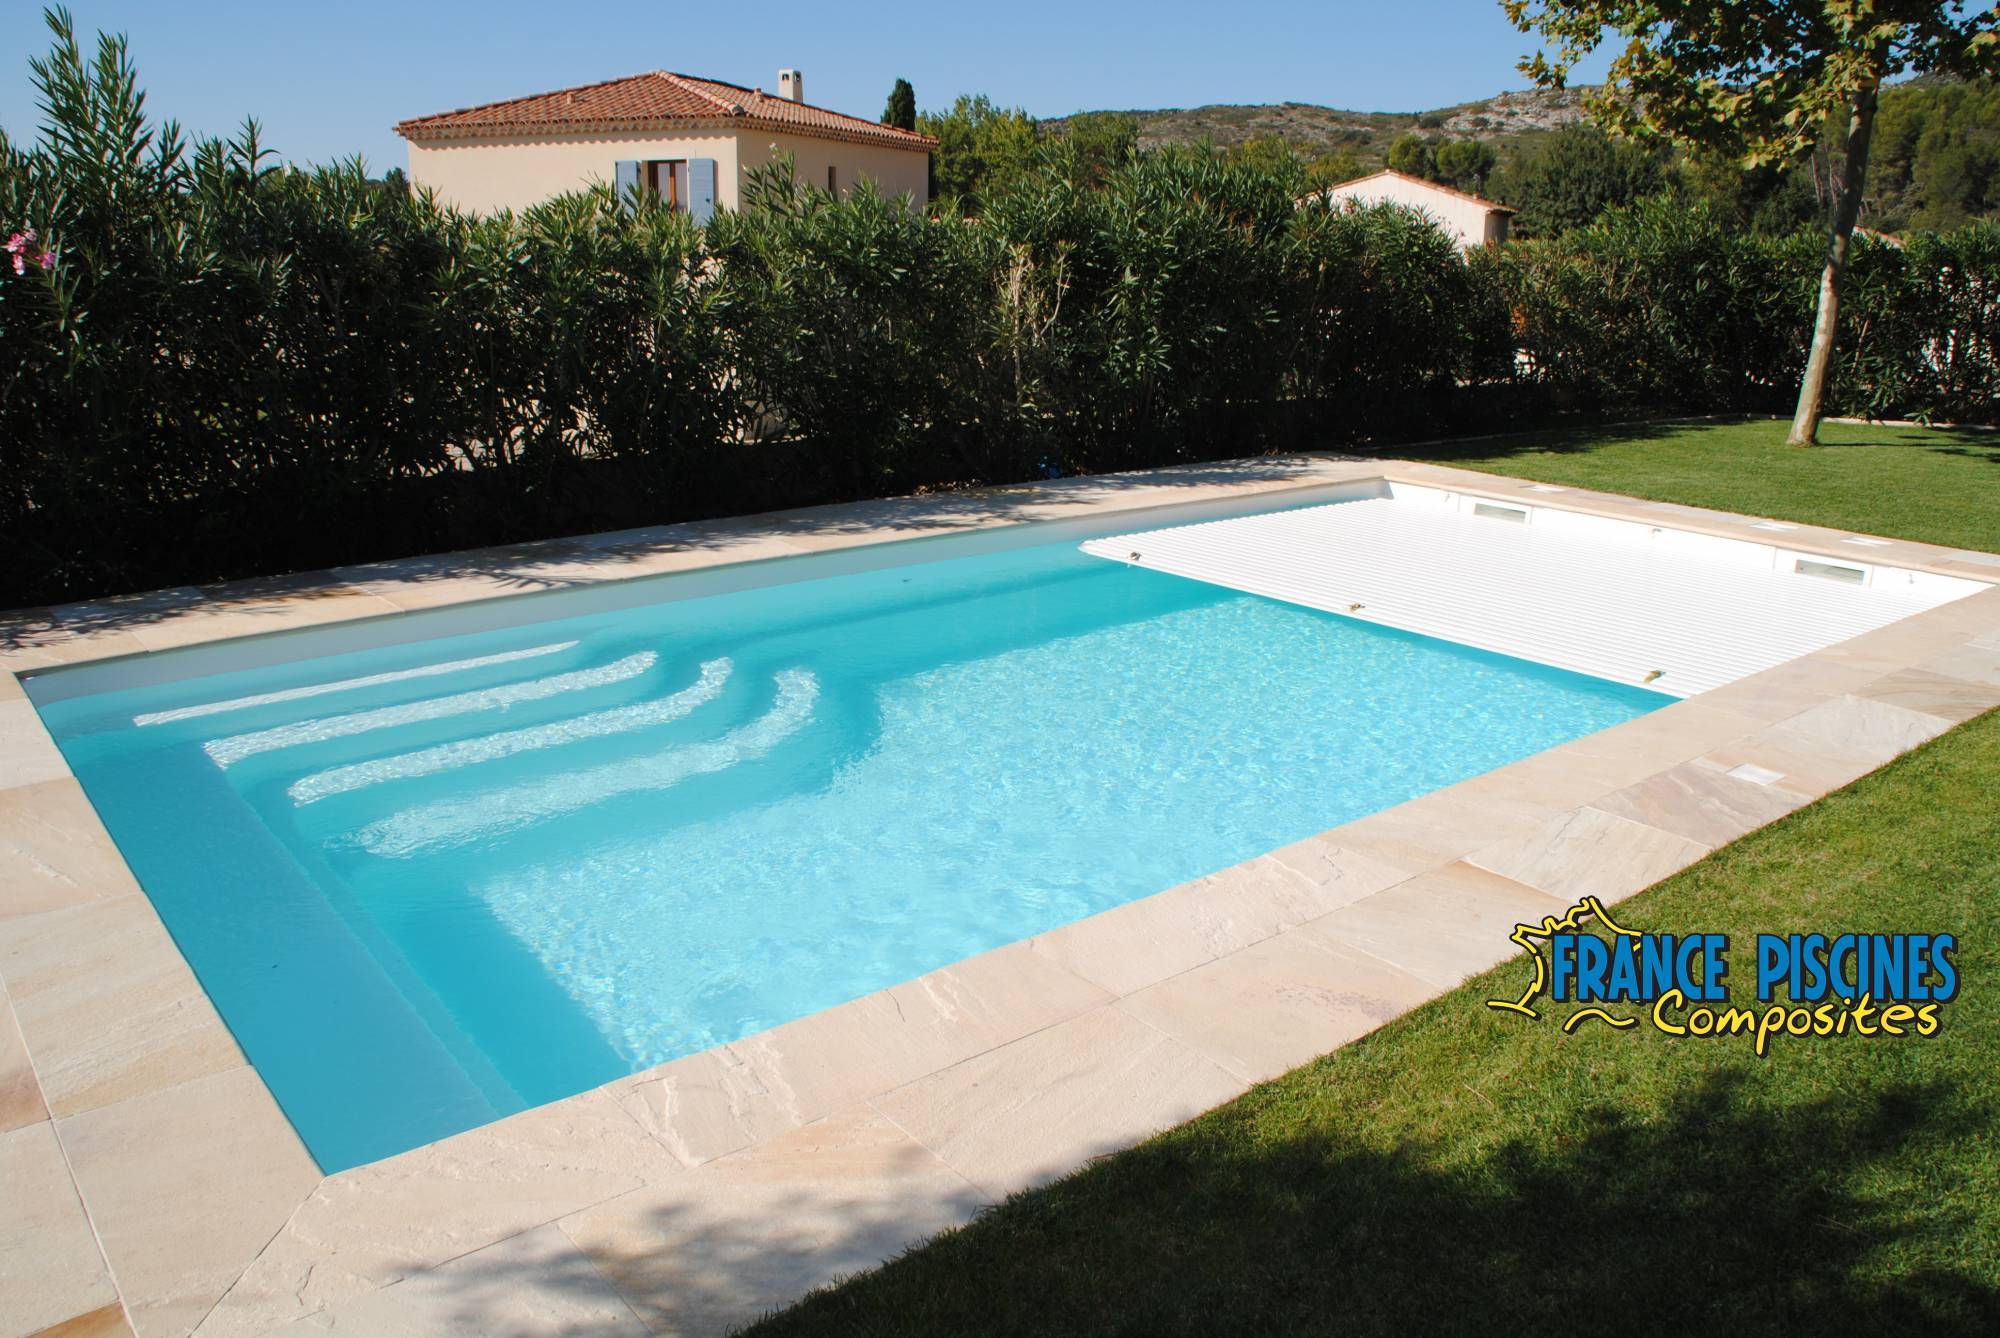 Vente et pose de piscine enterr e coque polyester for Vente piscine coque